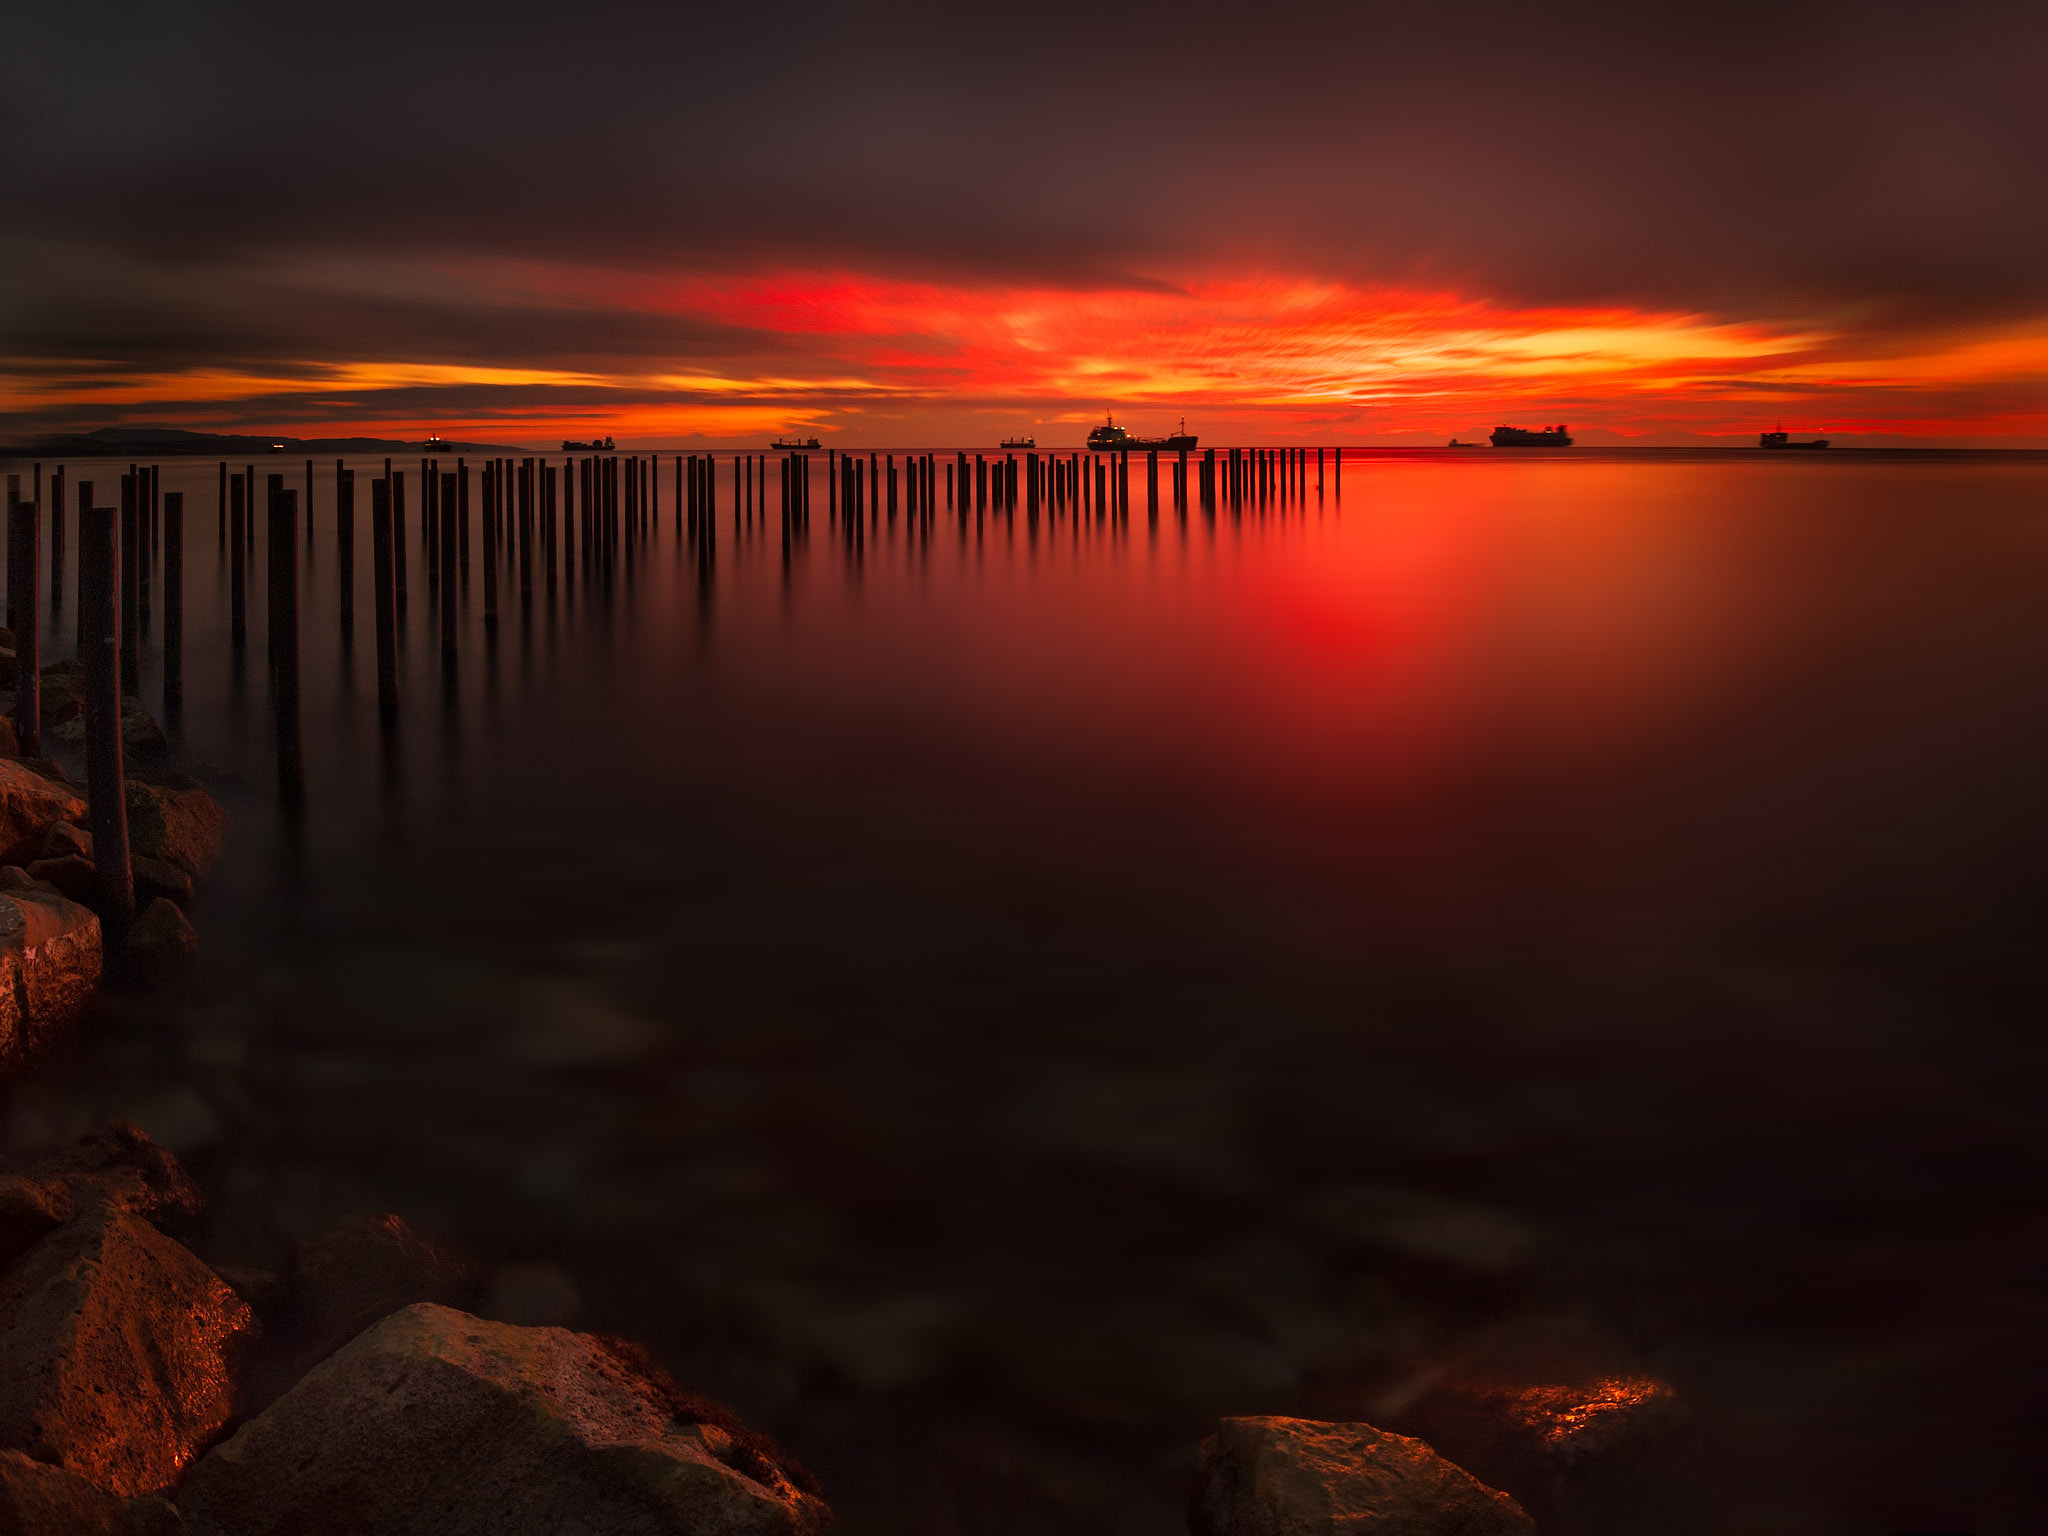 Photograph Color fever by Tomasz Huczek on 500px